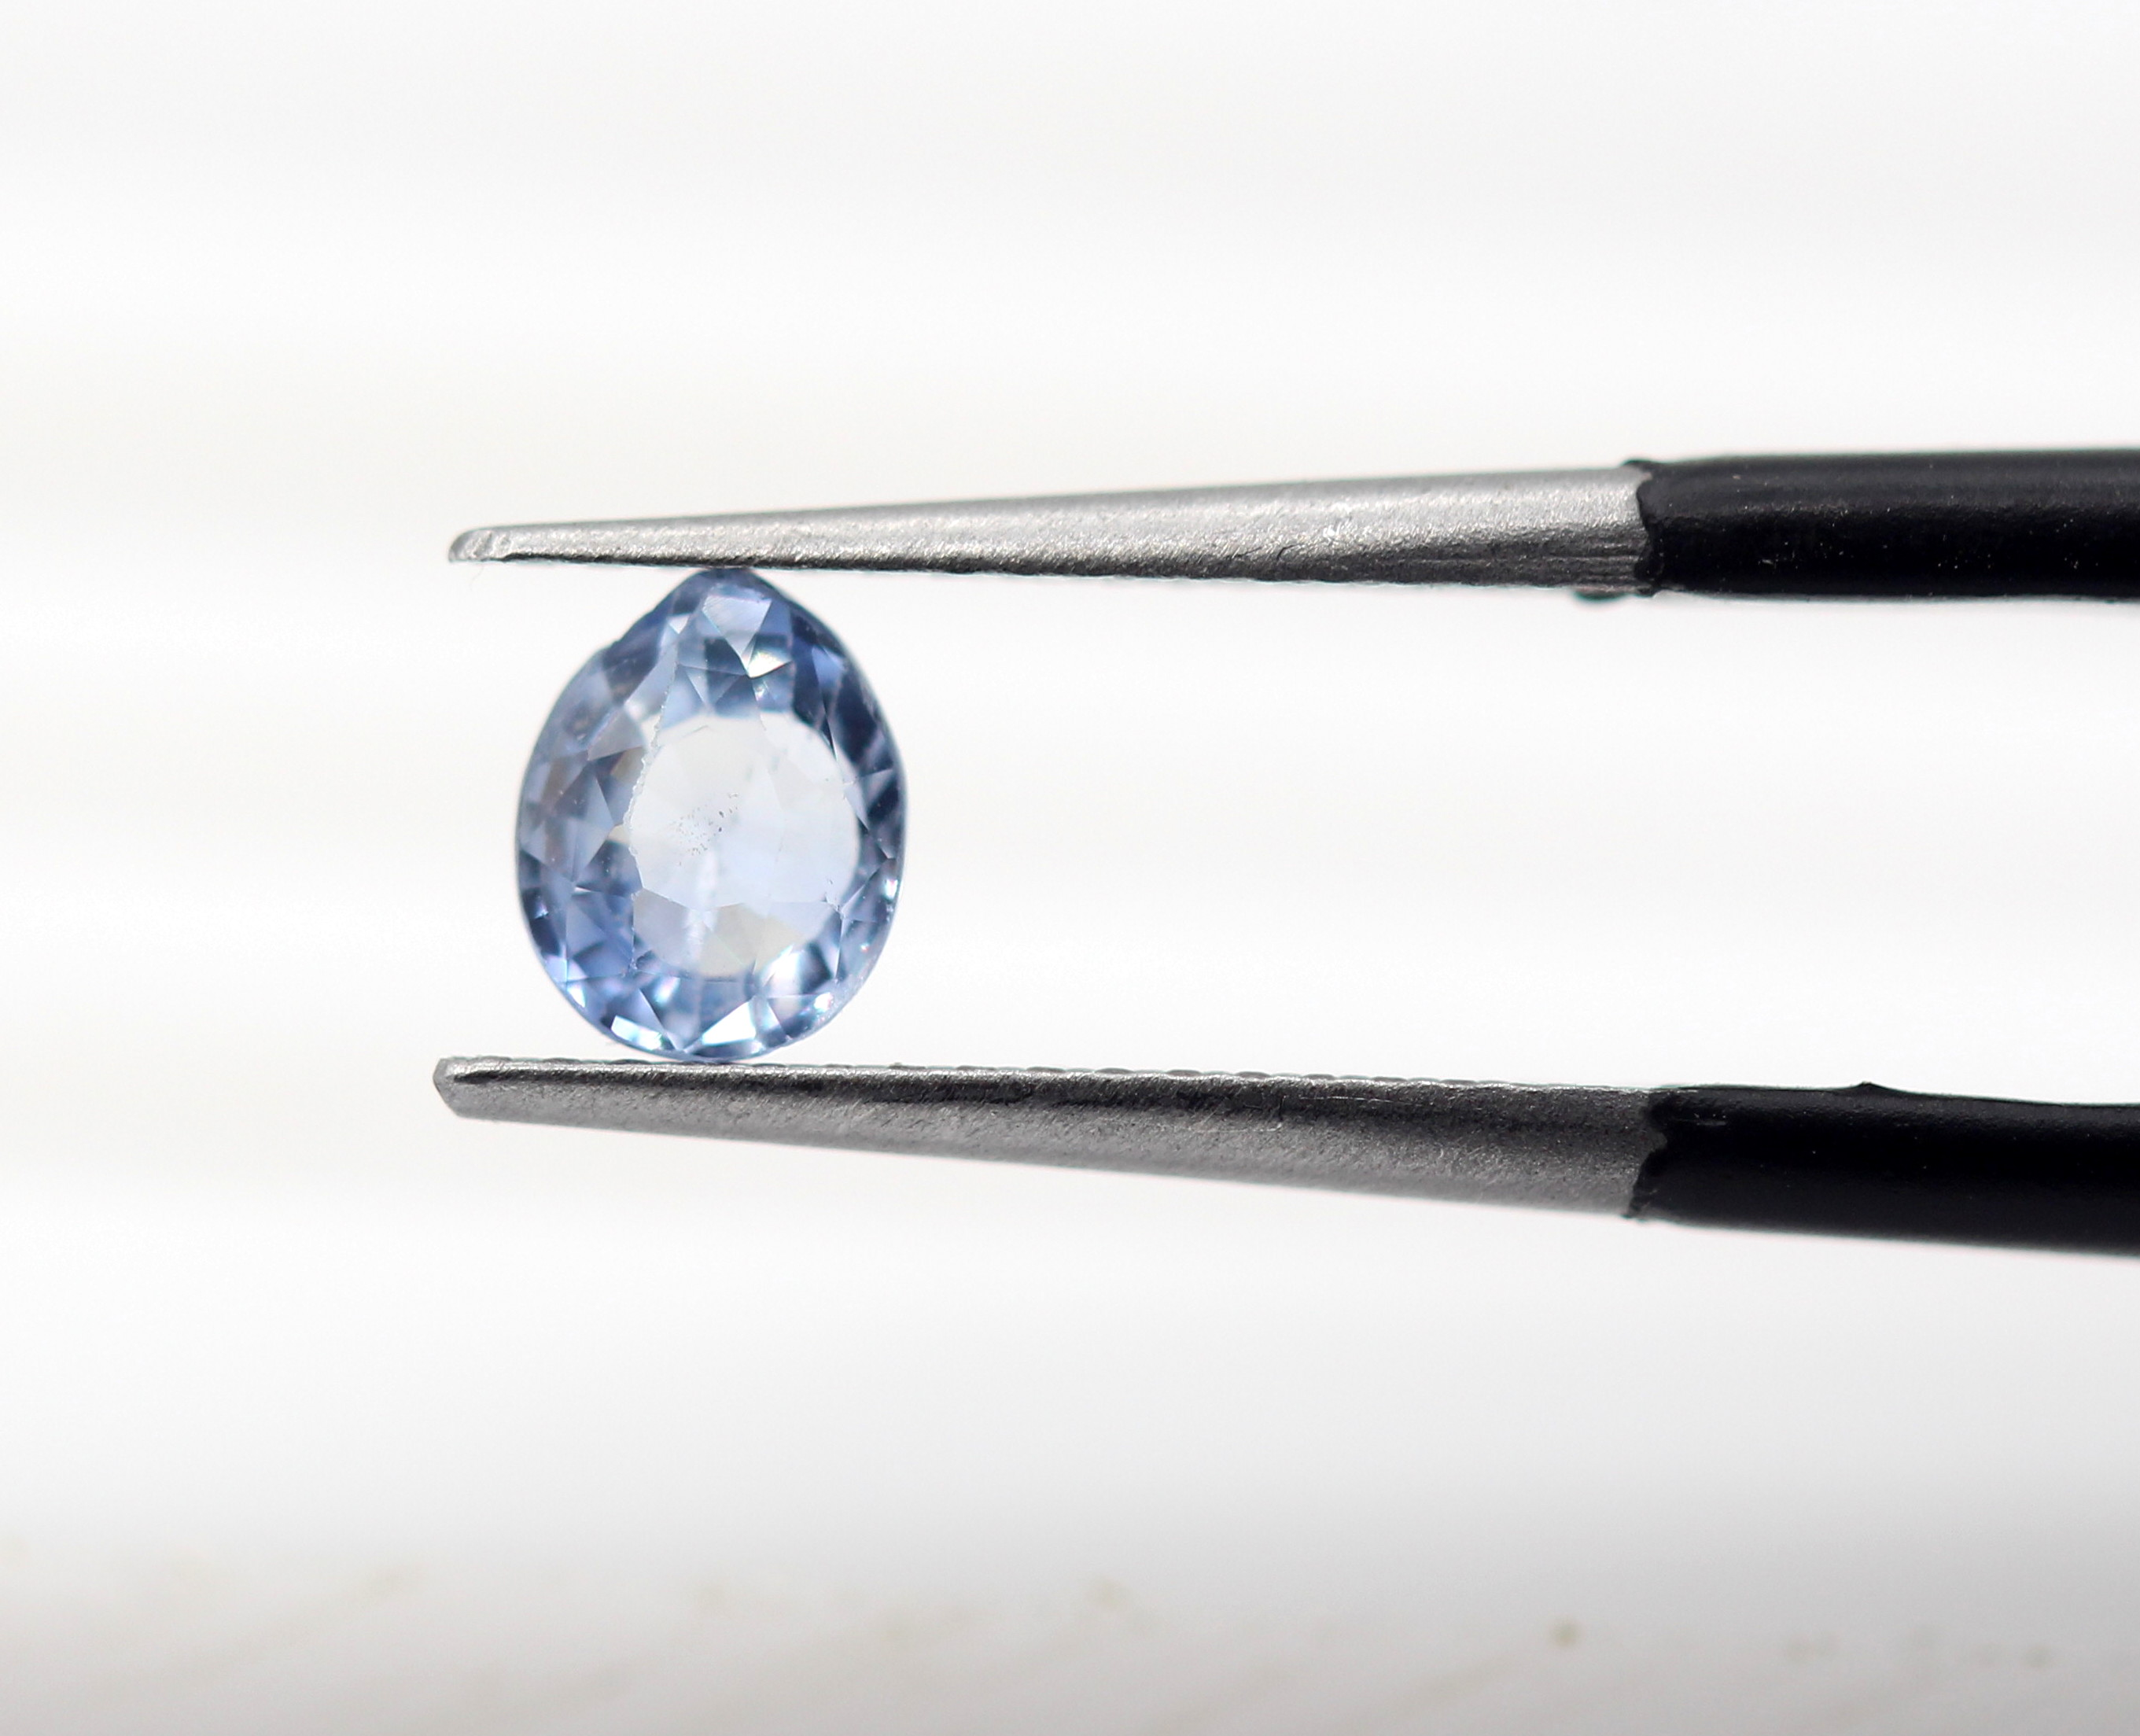 0.69 Ct Blue Sapphire Natural Gemstone Uneven Oval Cut Rich Blue Color Certified